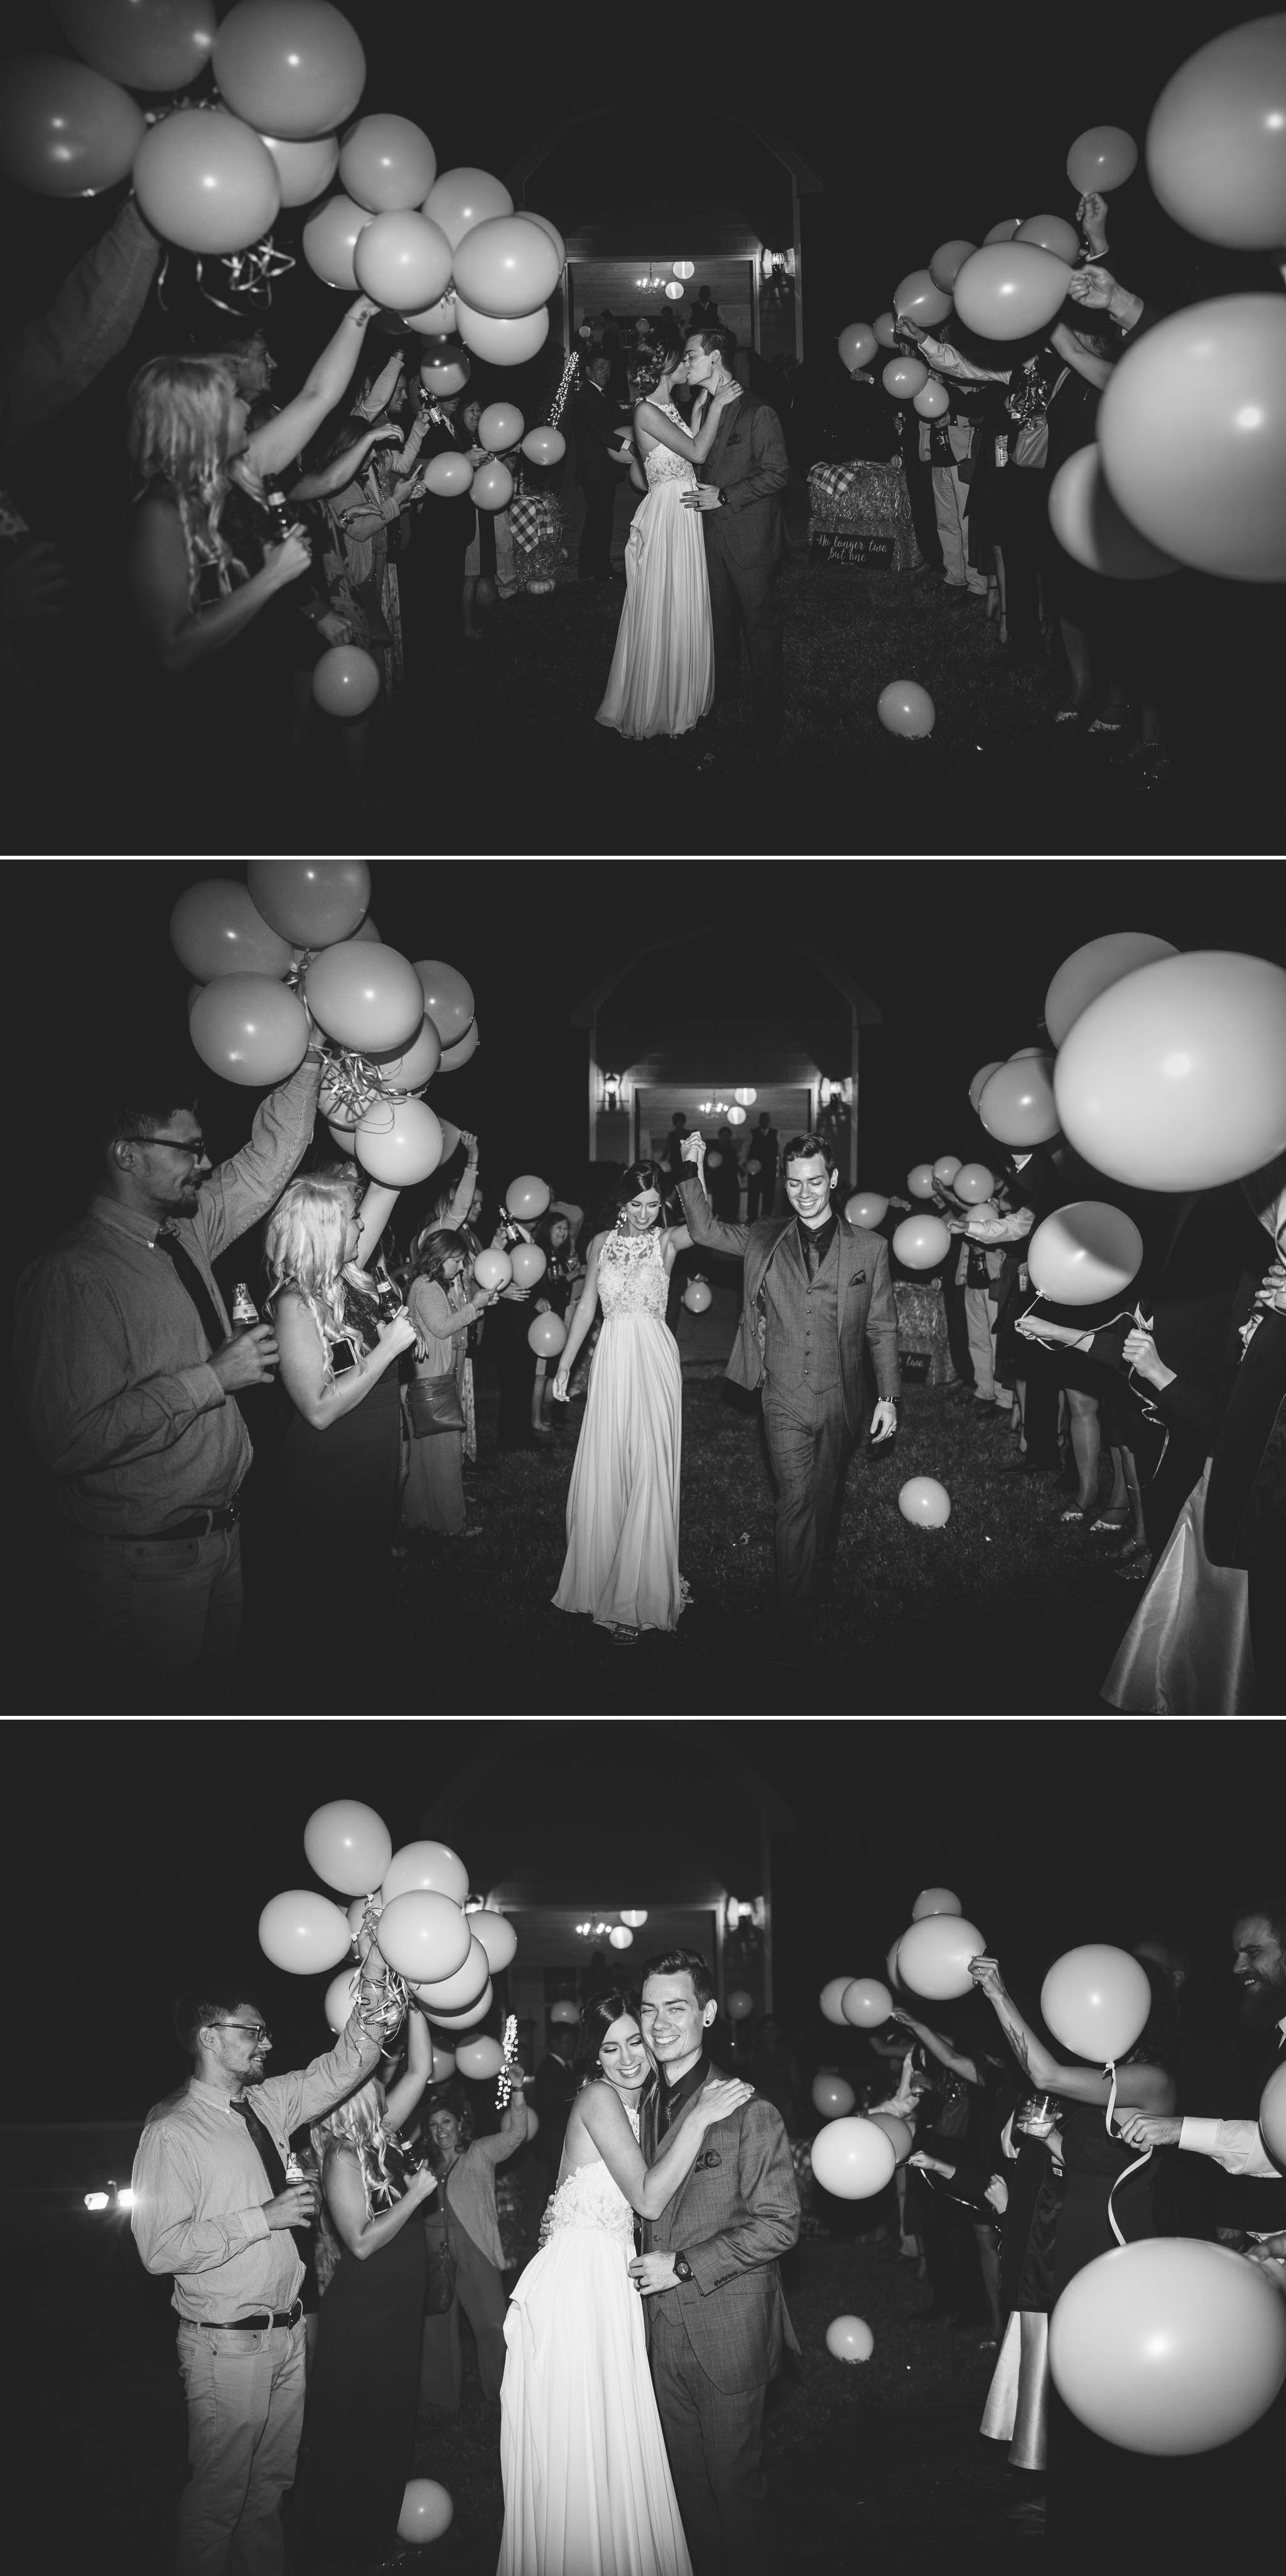 Balloon Exit - Brittany + Greg - The Groomes Place - Charlotte, NC Wedding Photographer